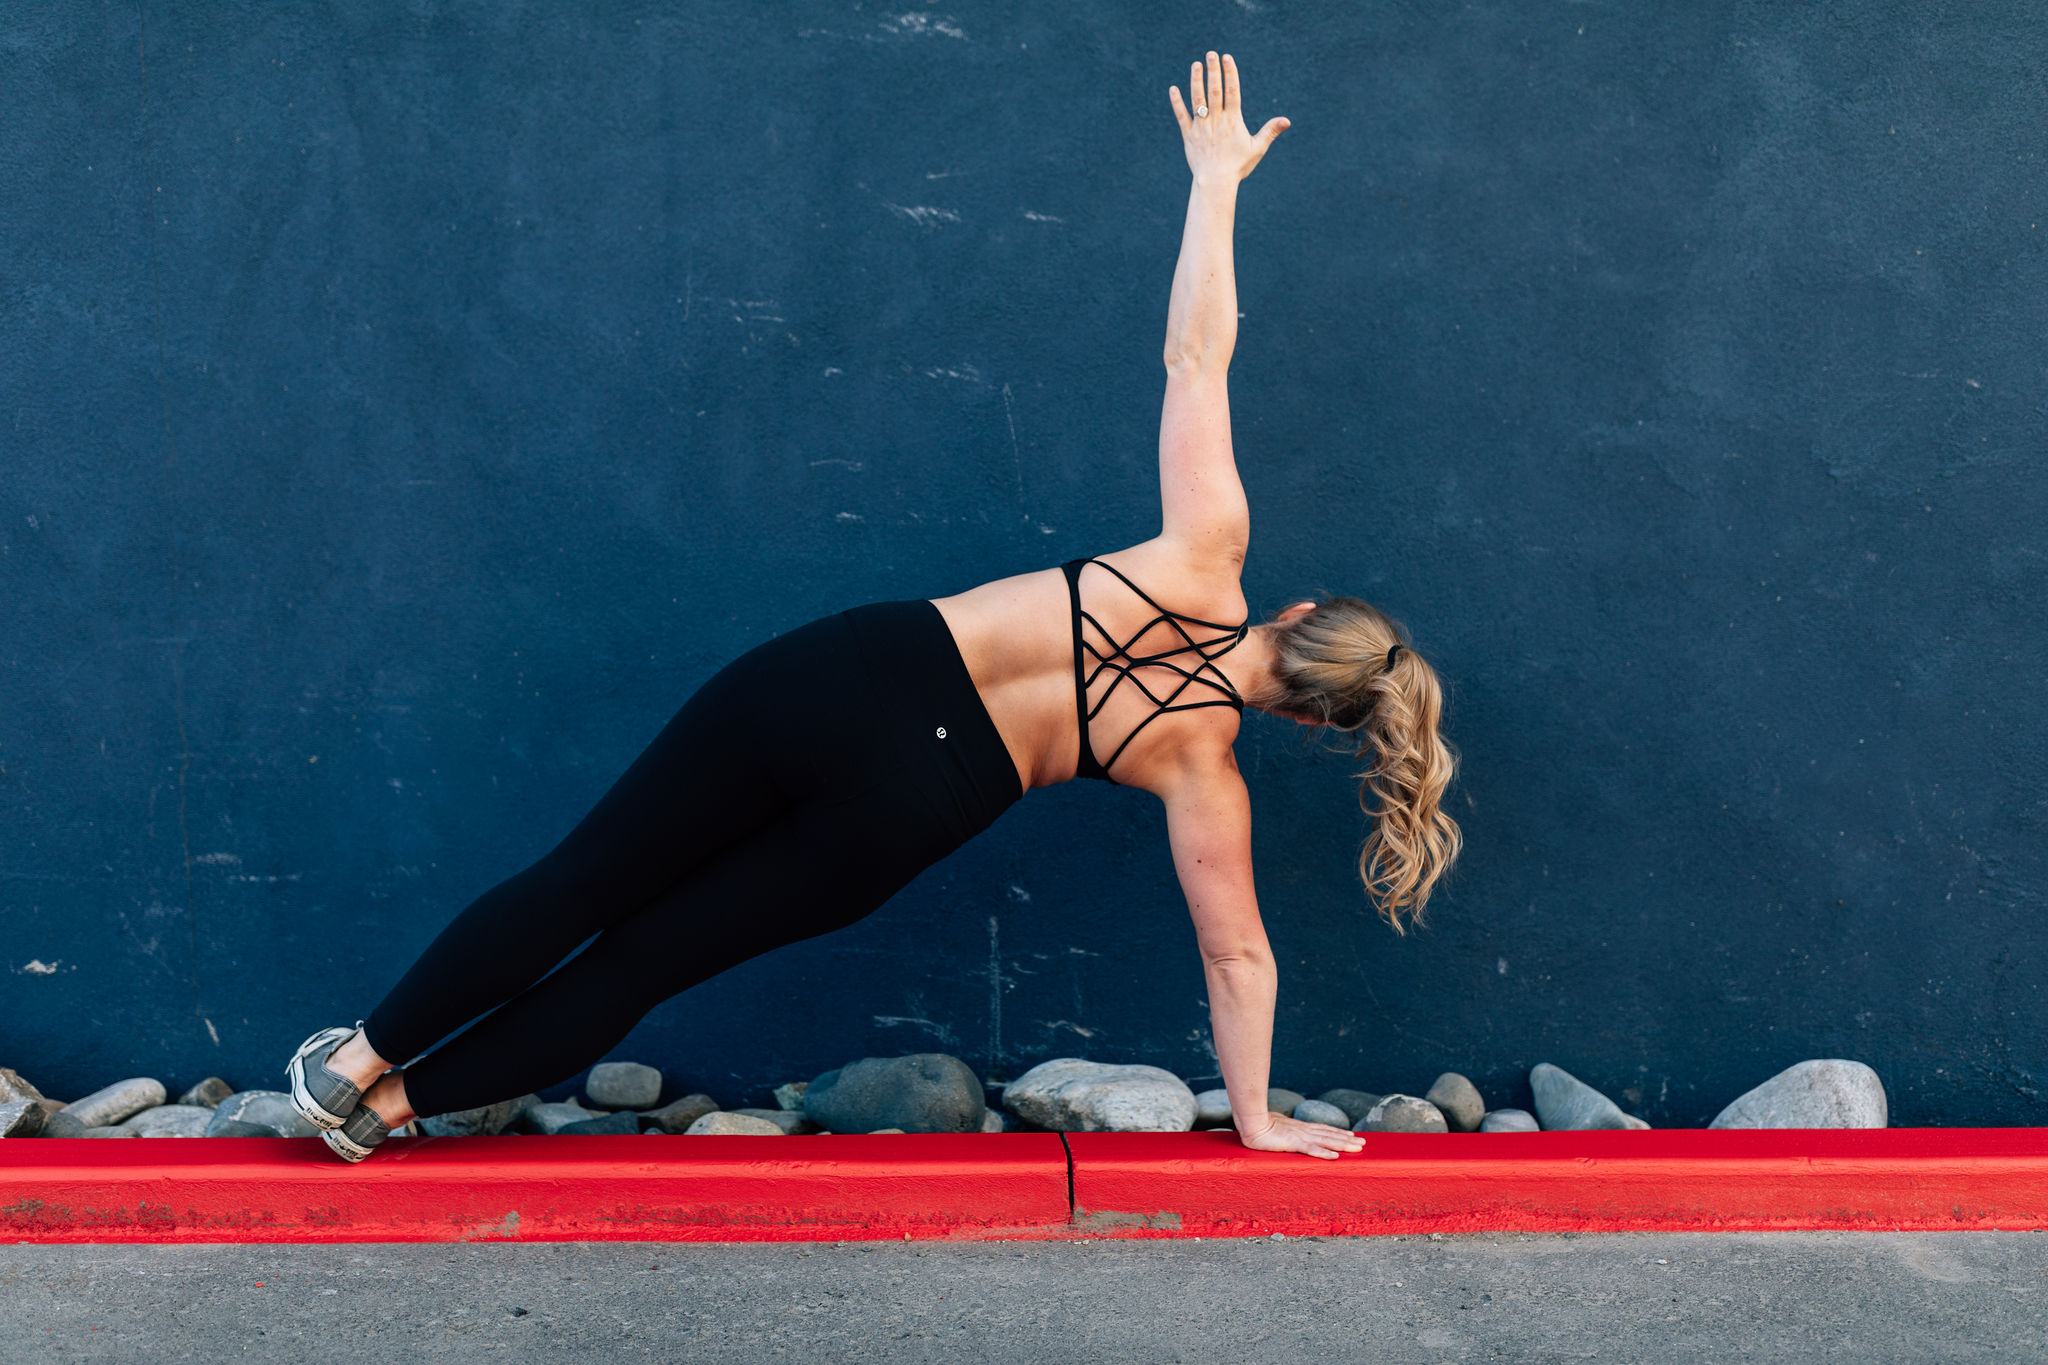 RYT 500 hour yoga instructor leading private and public classes, workshops and special events in Bozeman, Montana, and beyond. Terra also shares her passion for practice on her yoga lifestyle blog.